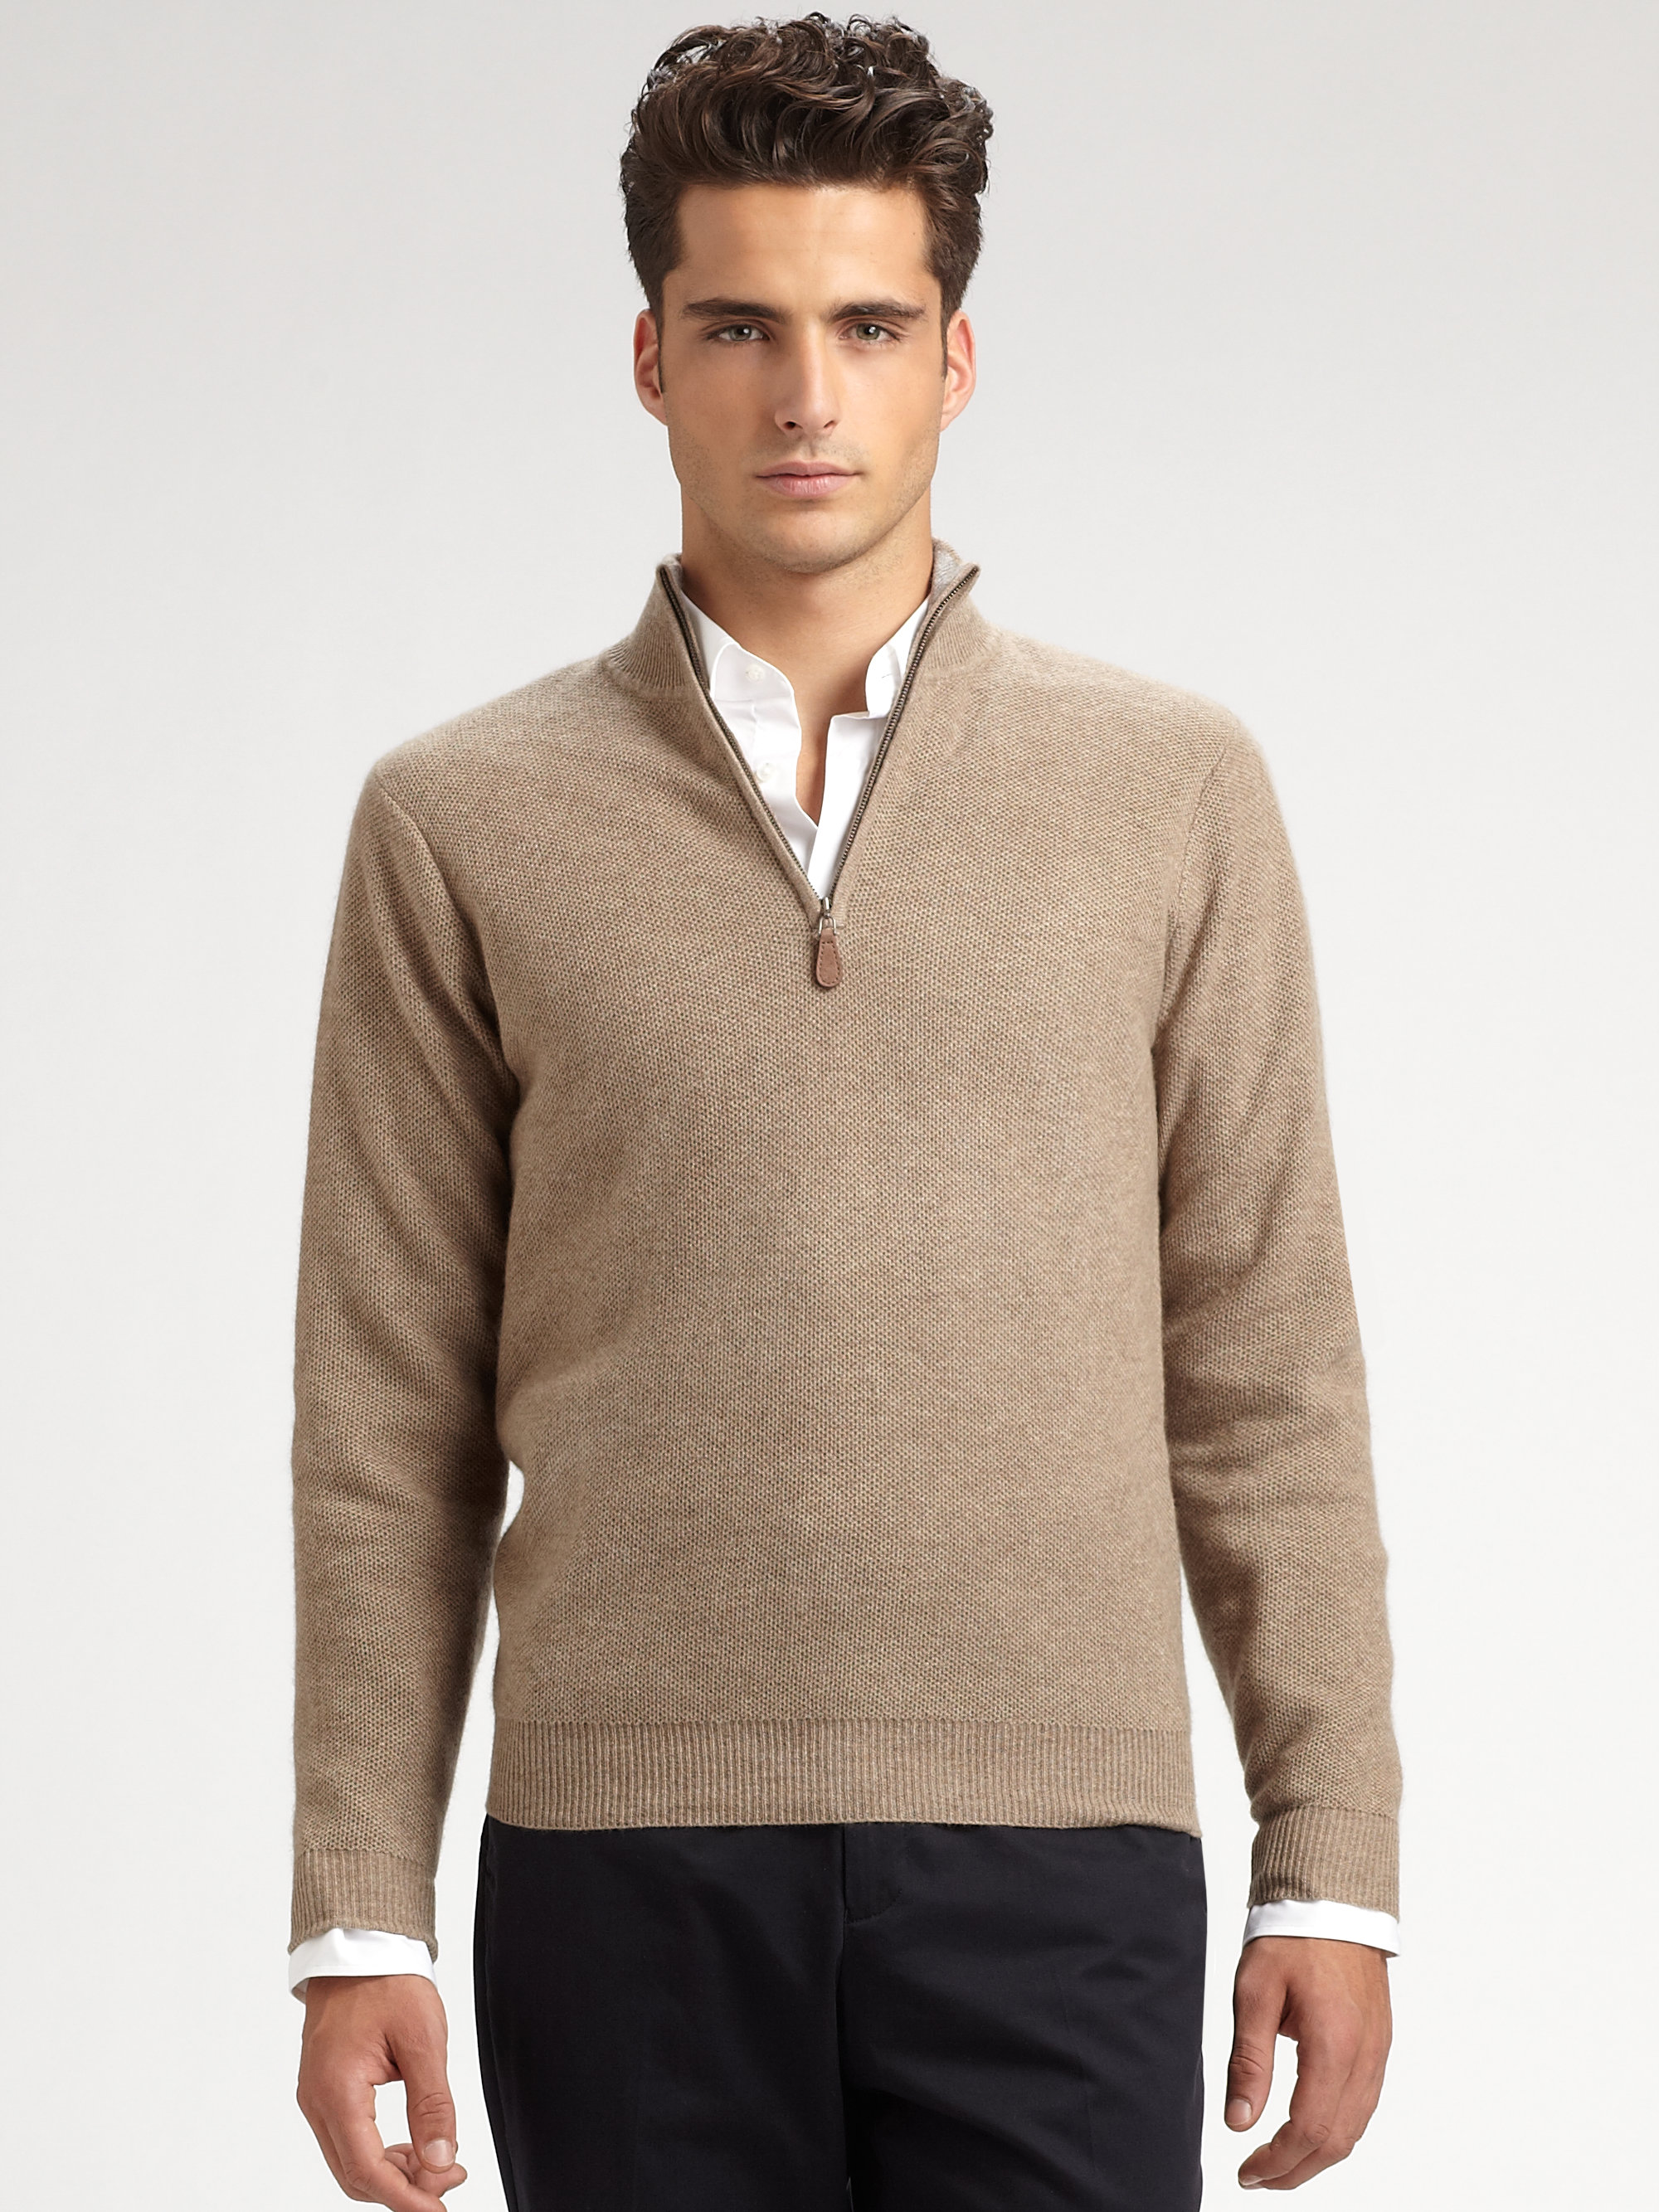 Ah, sweater weather. When the days get colder, the need for the perfect thick knitted layer is essential to nailing men's style. Make some space in your winter wardrobe for the classic cashmere sweater with updated colors, fits, and styles that work for any guy's fashion sense.